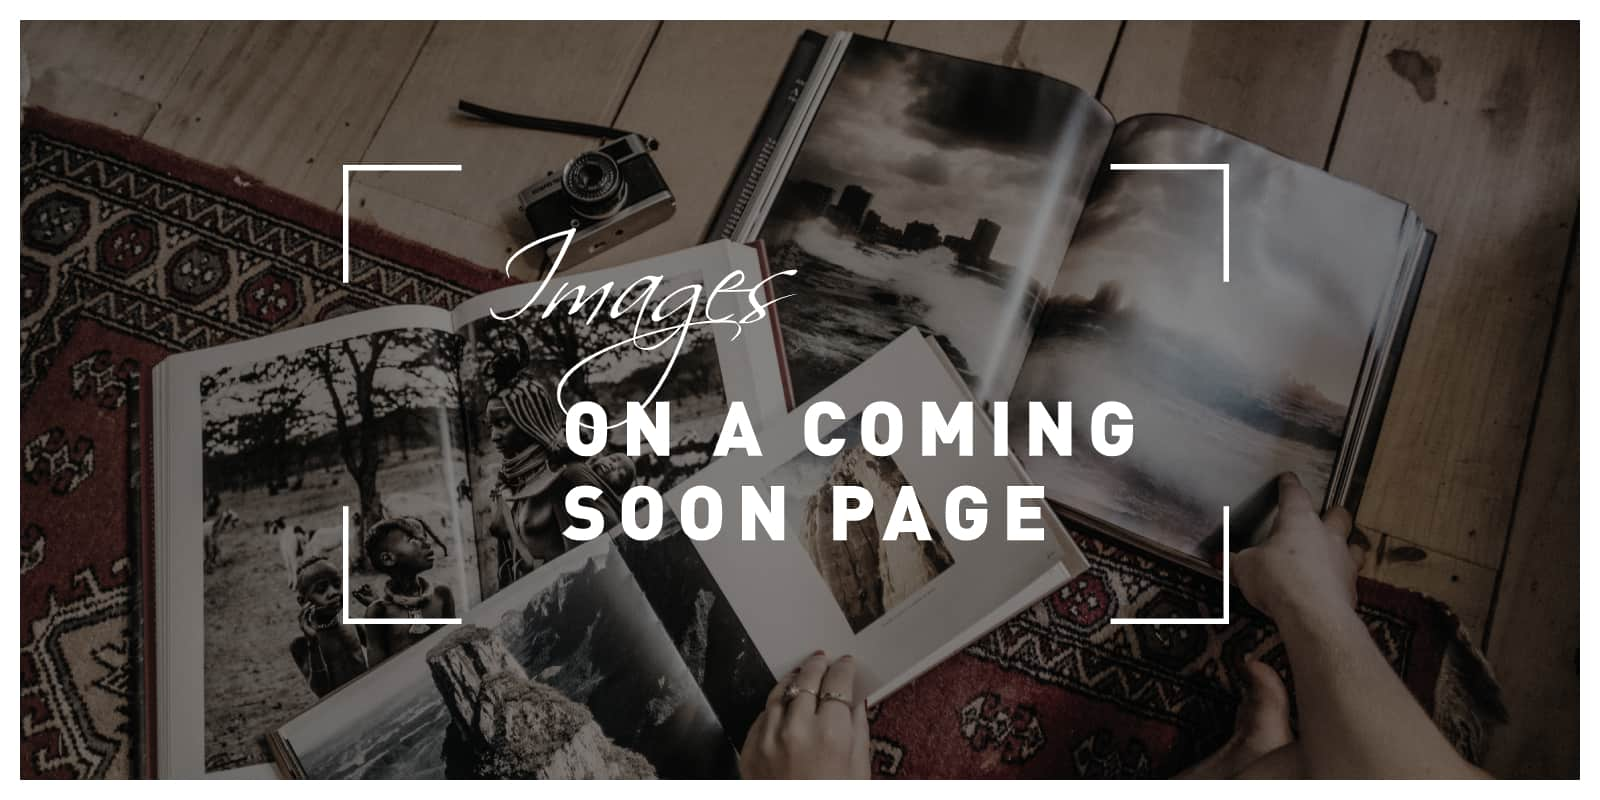 Images on a coming soon page